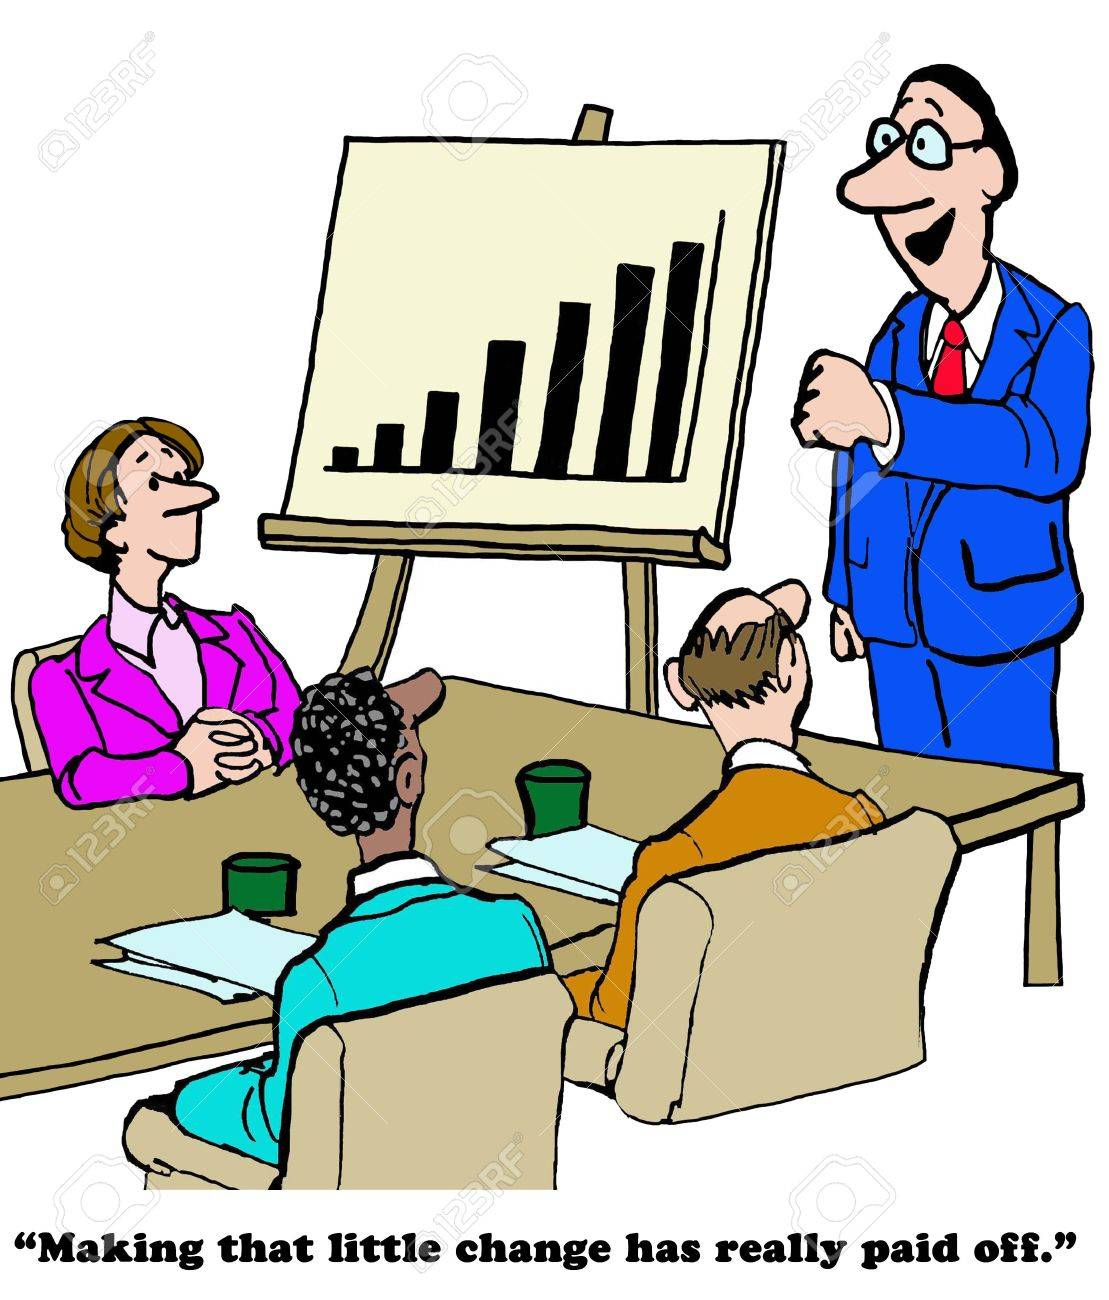 color business cartoon about making a change that really paid off with excellent sales results - Off Color Cartoons